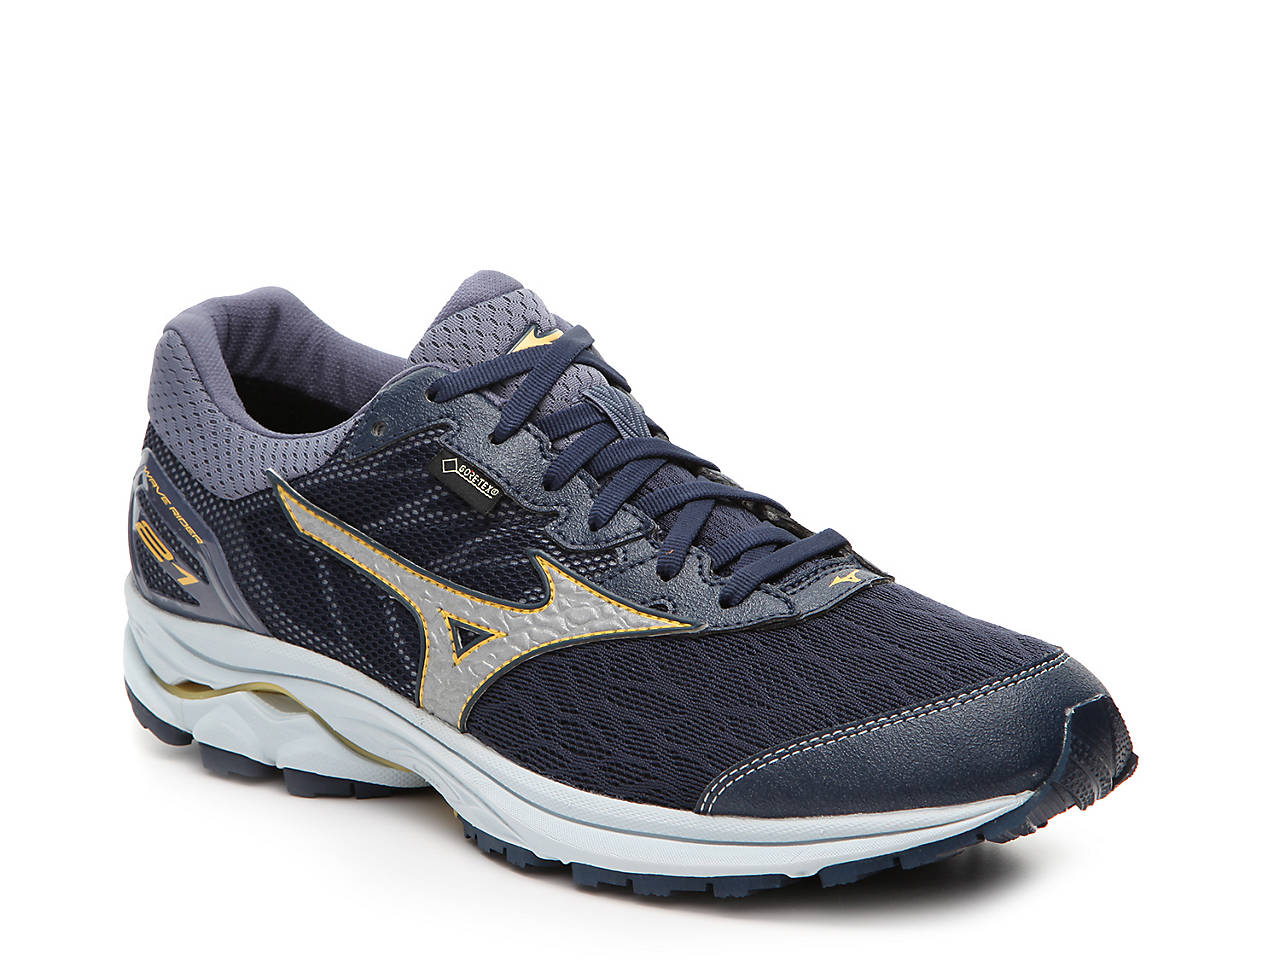 d4330800f010 Mizuno Wave Rider 21 GTX Performance Running Shoe - Men's Men's ...